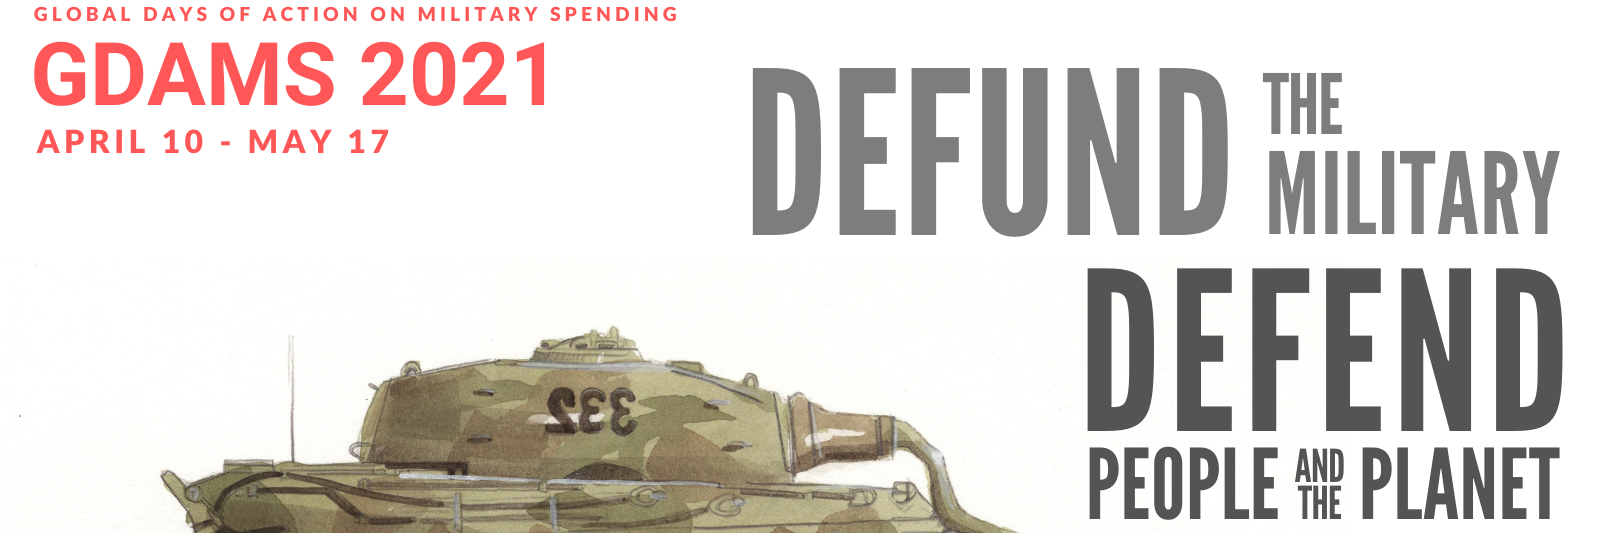 Tankin piippu on lerpahtanut. Teksti: Defund the military, Defend people and the planet. Global Days of action on military spending April 10 - May 17. GDAMS 2021.